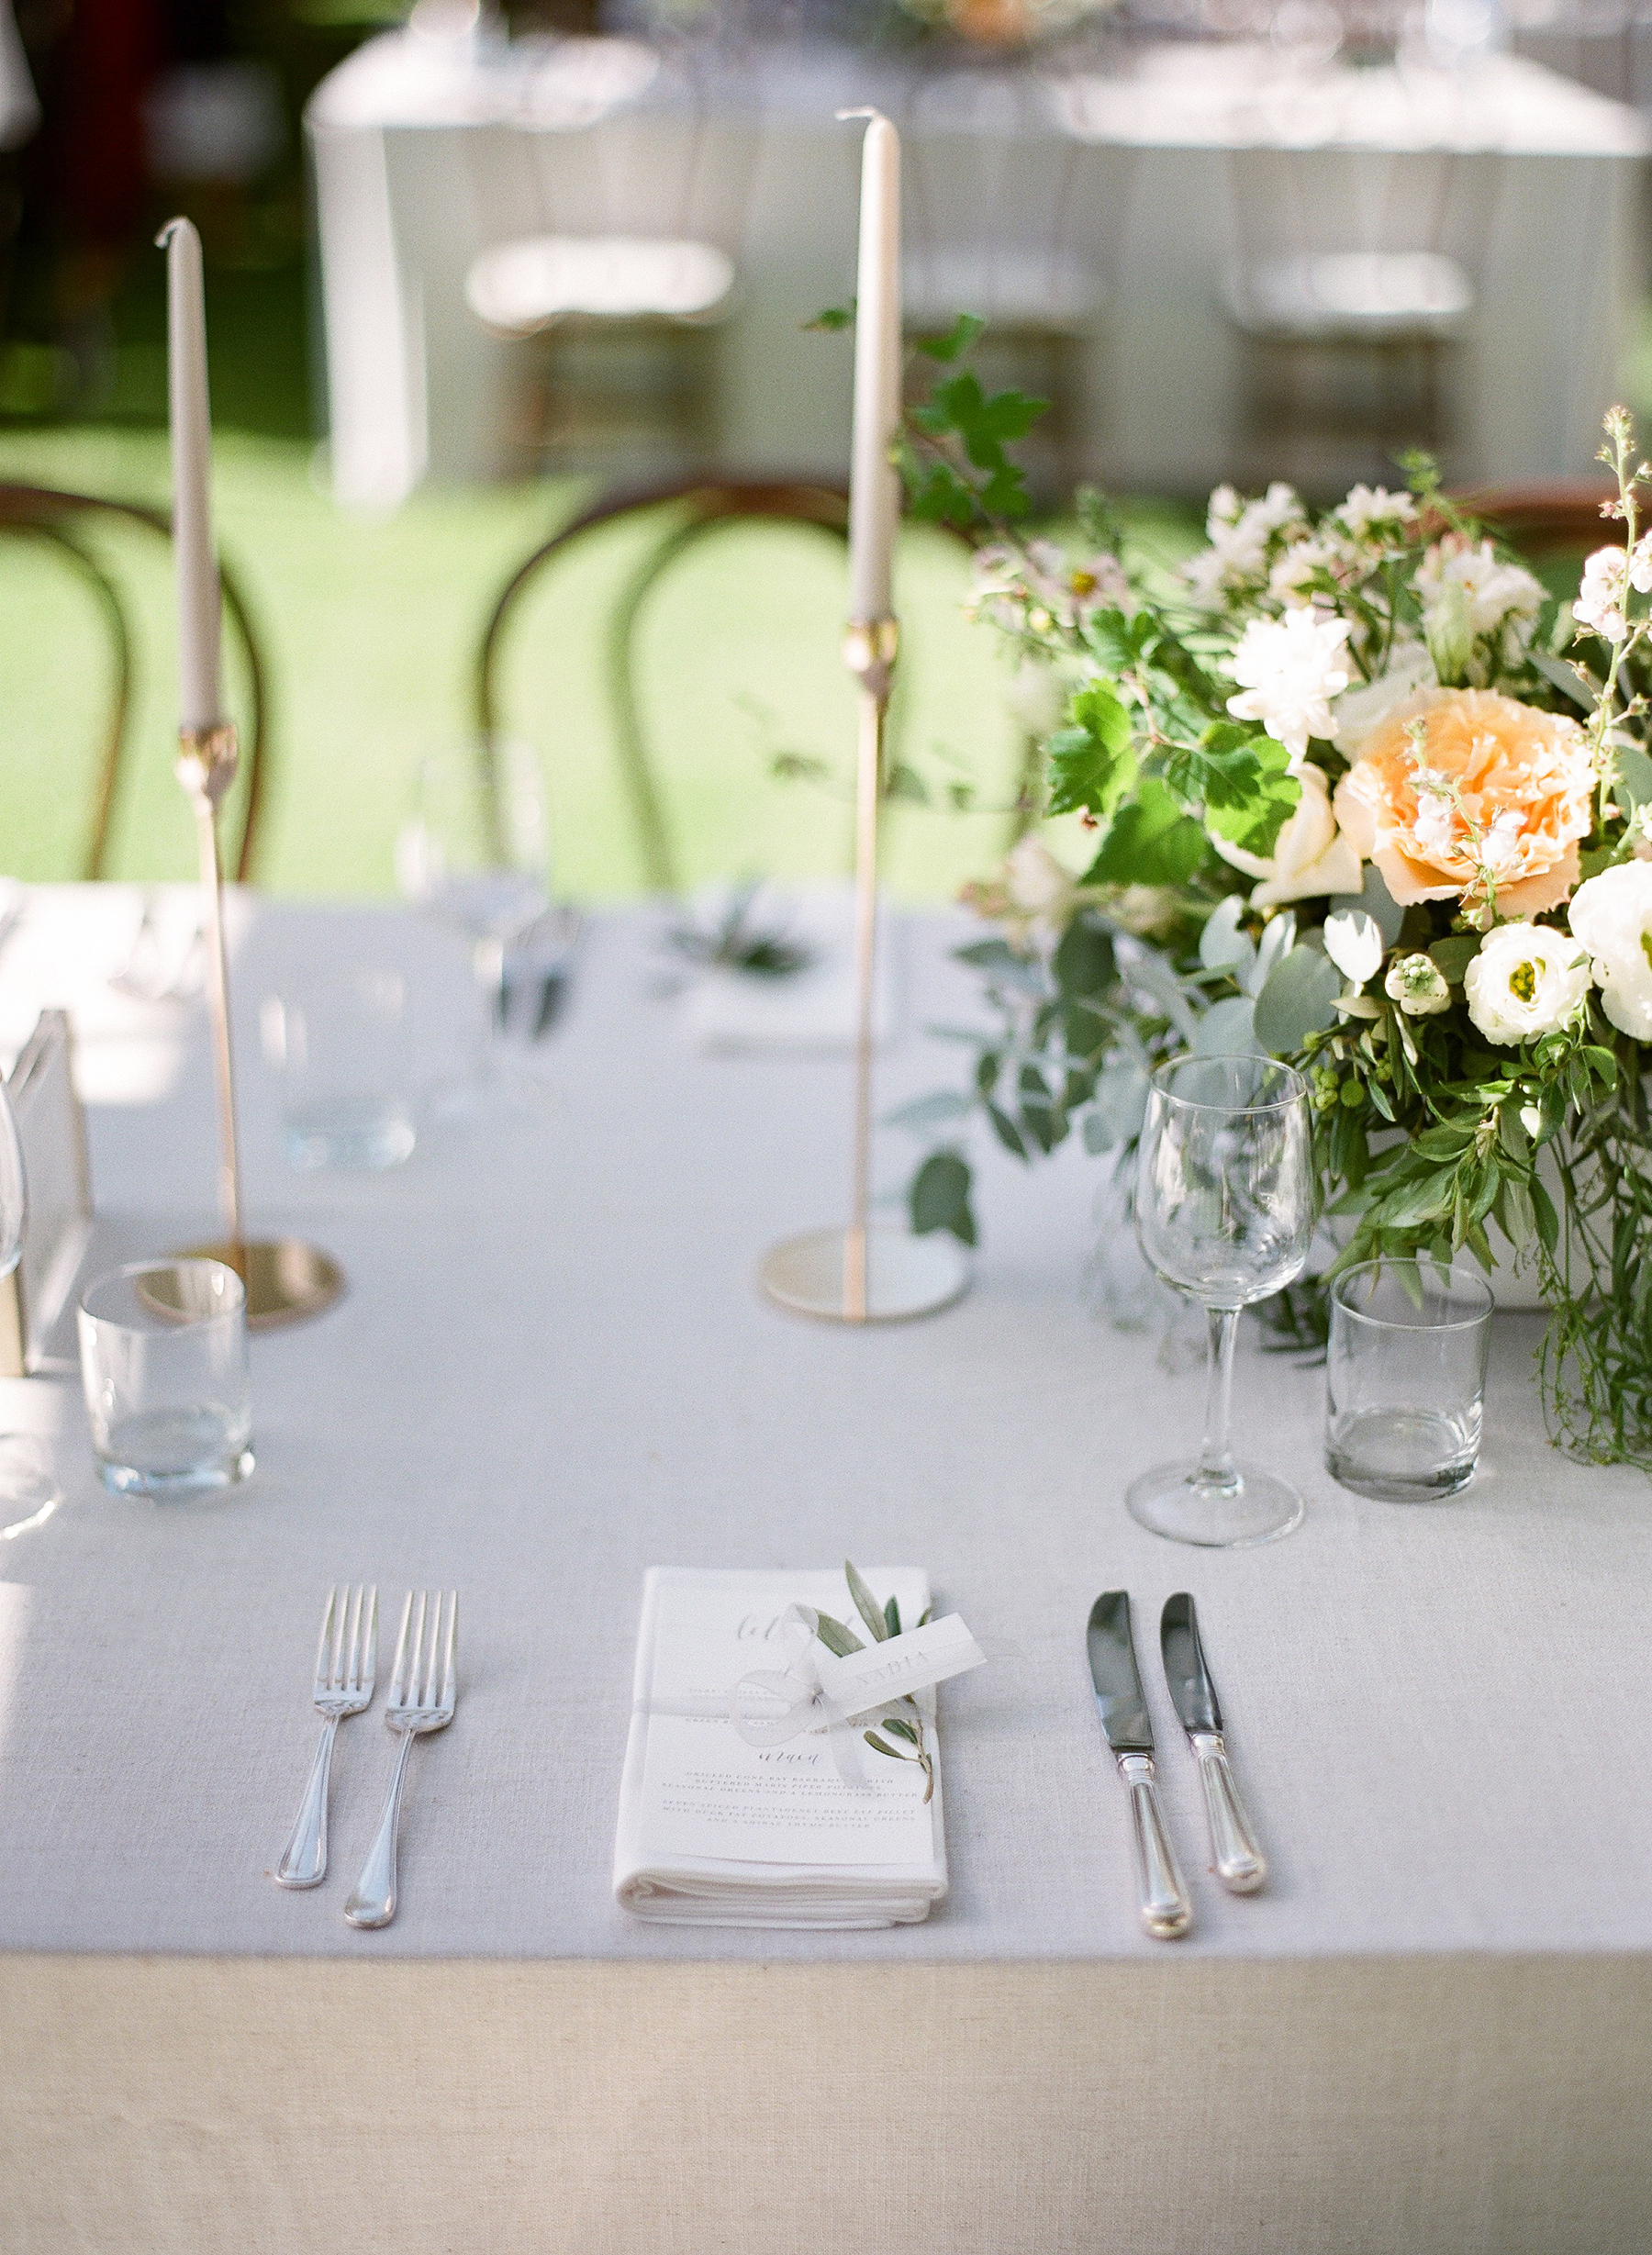 Aravella Event Design | Tree Elle Retreat Wedding | Photo by Jemma Keech Photography | Tablescape | Soft Peach Florals